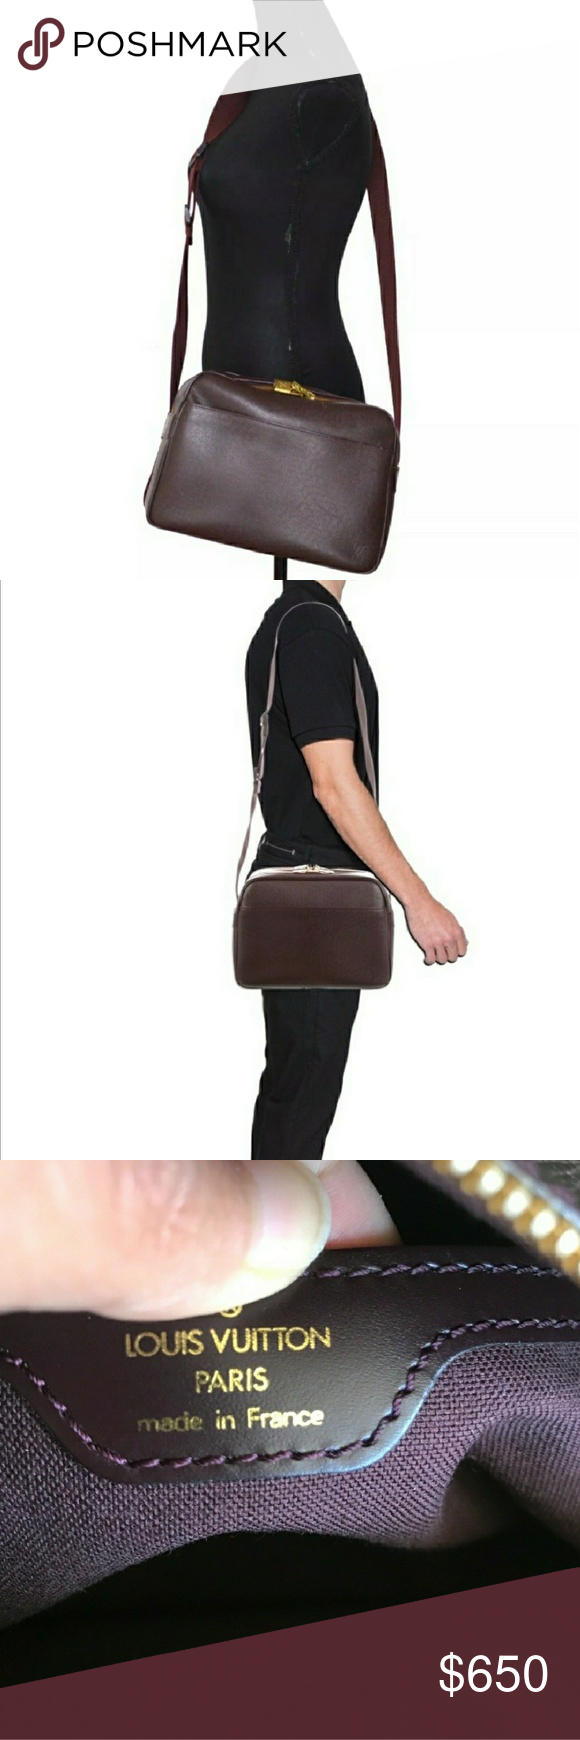 8aa2f784c3c Louis Vuitton ~ Burgundy Taiga Reporter PM Bag Louis Vuitton. In nearly  mint condition.